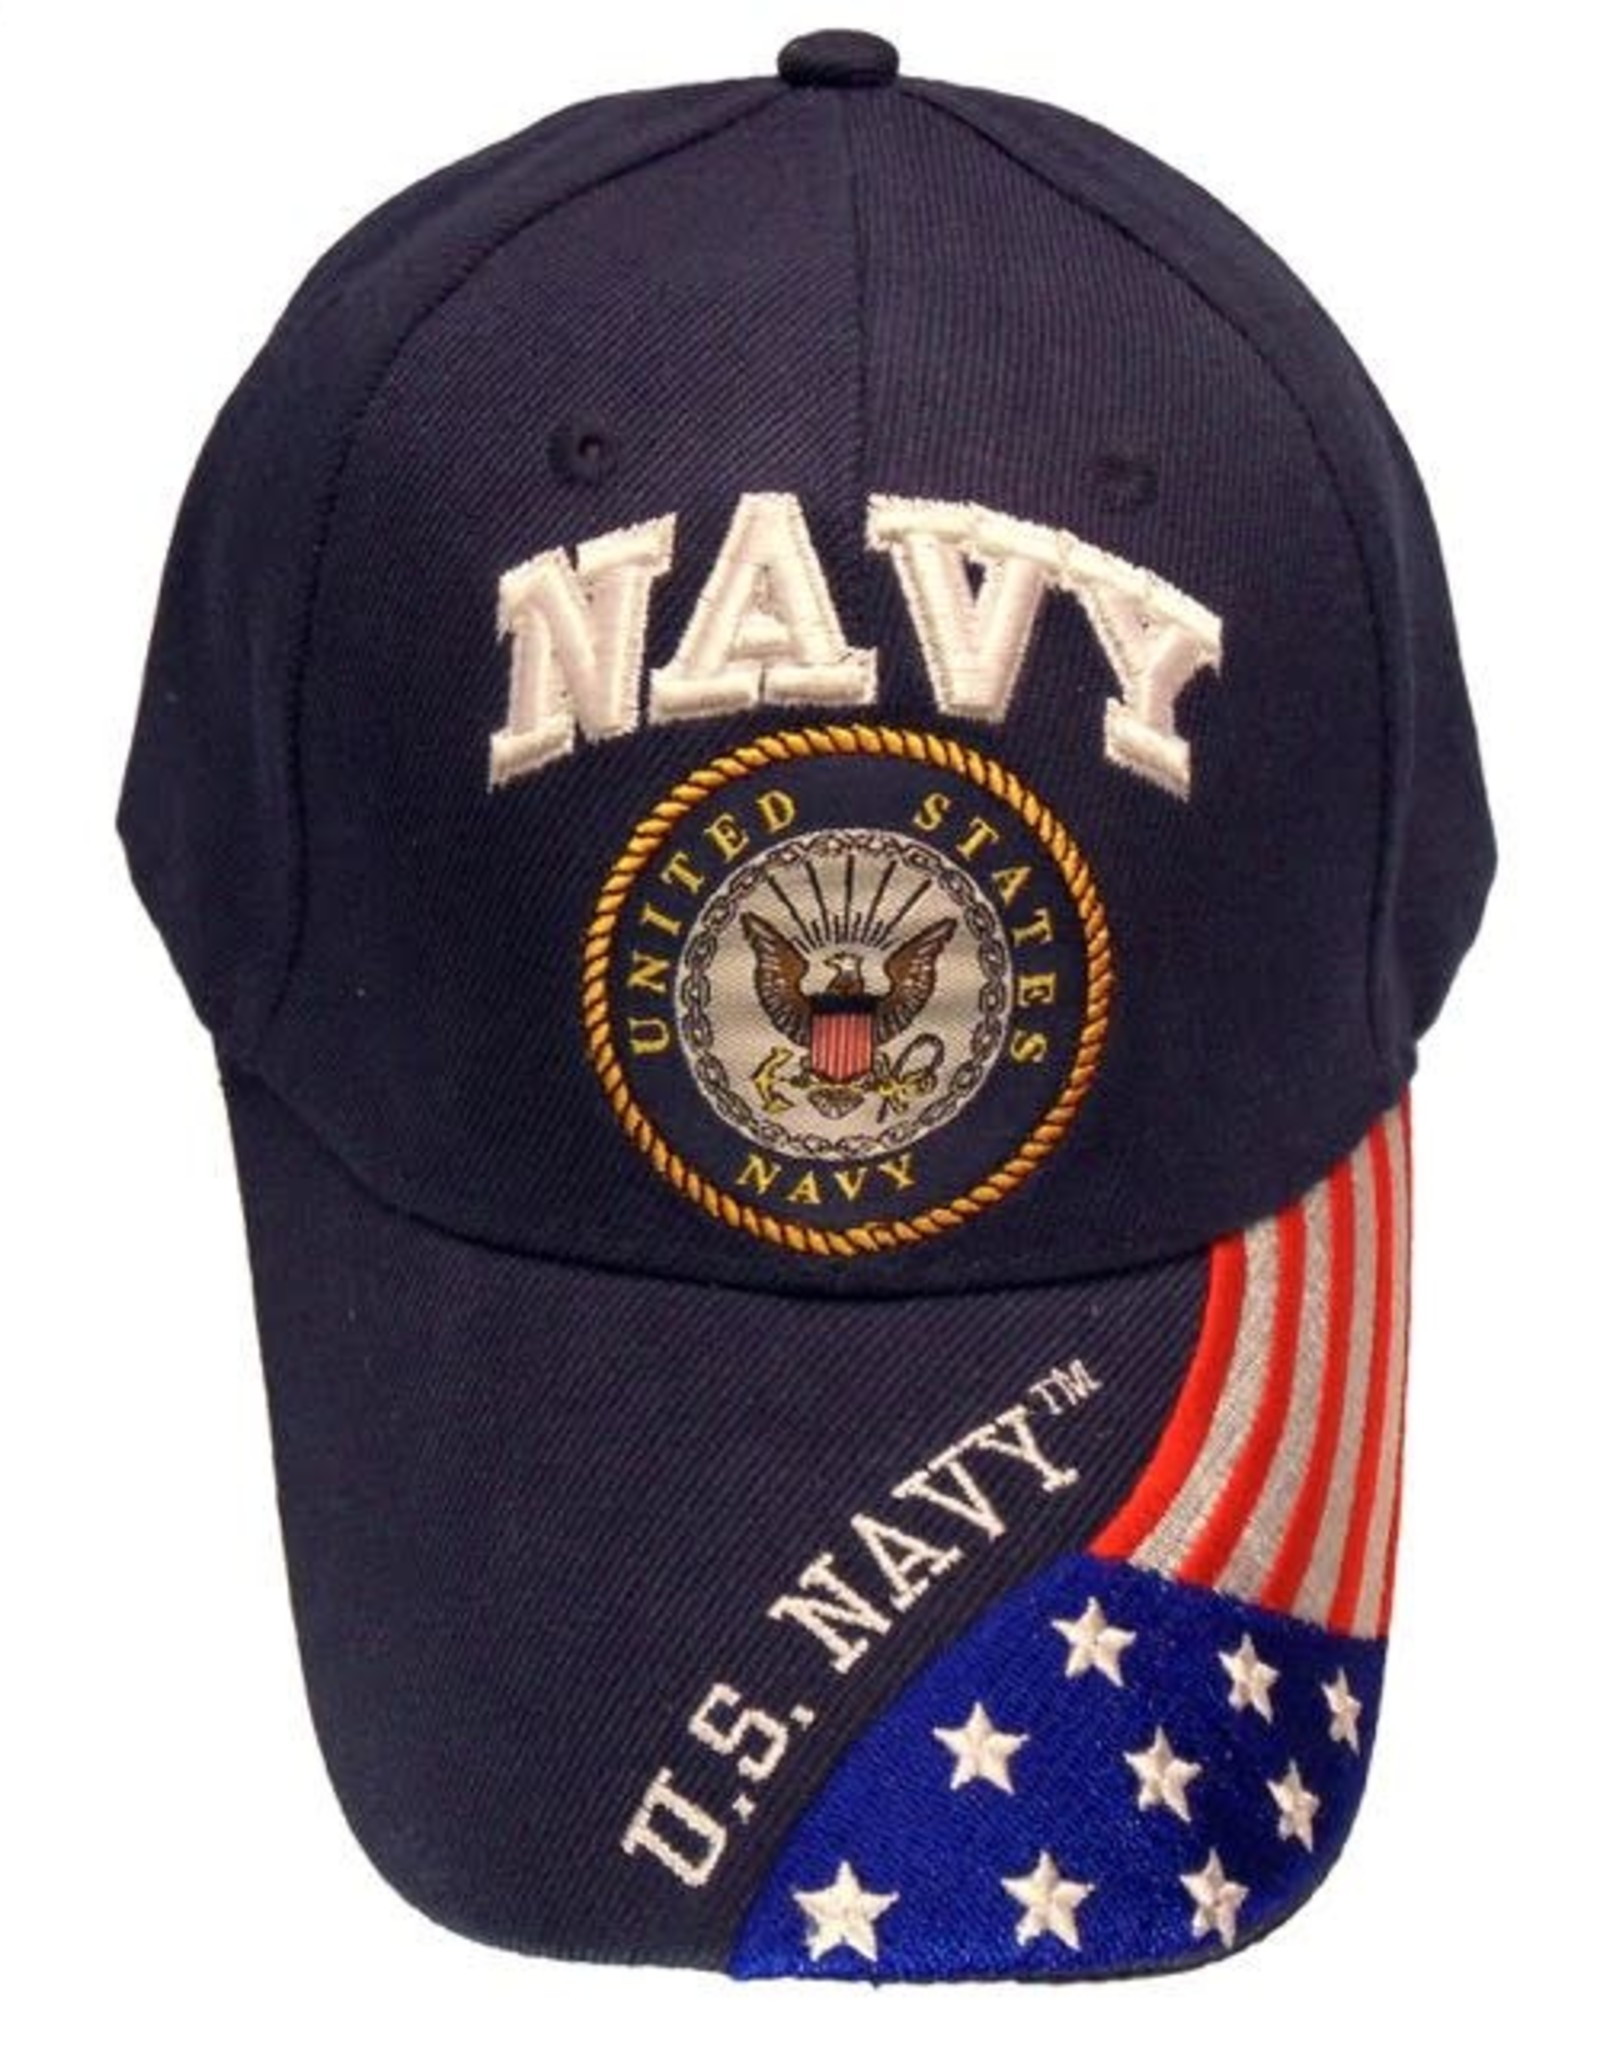 MidMil Navy Seal Hat with Flag on Bill Dark Blue